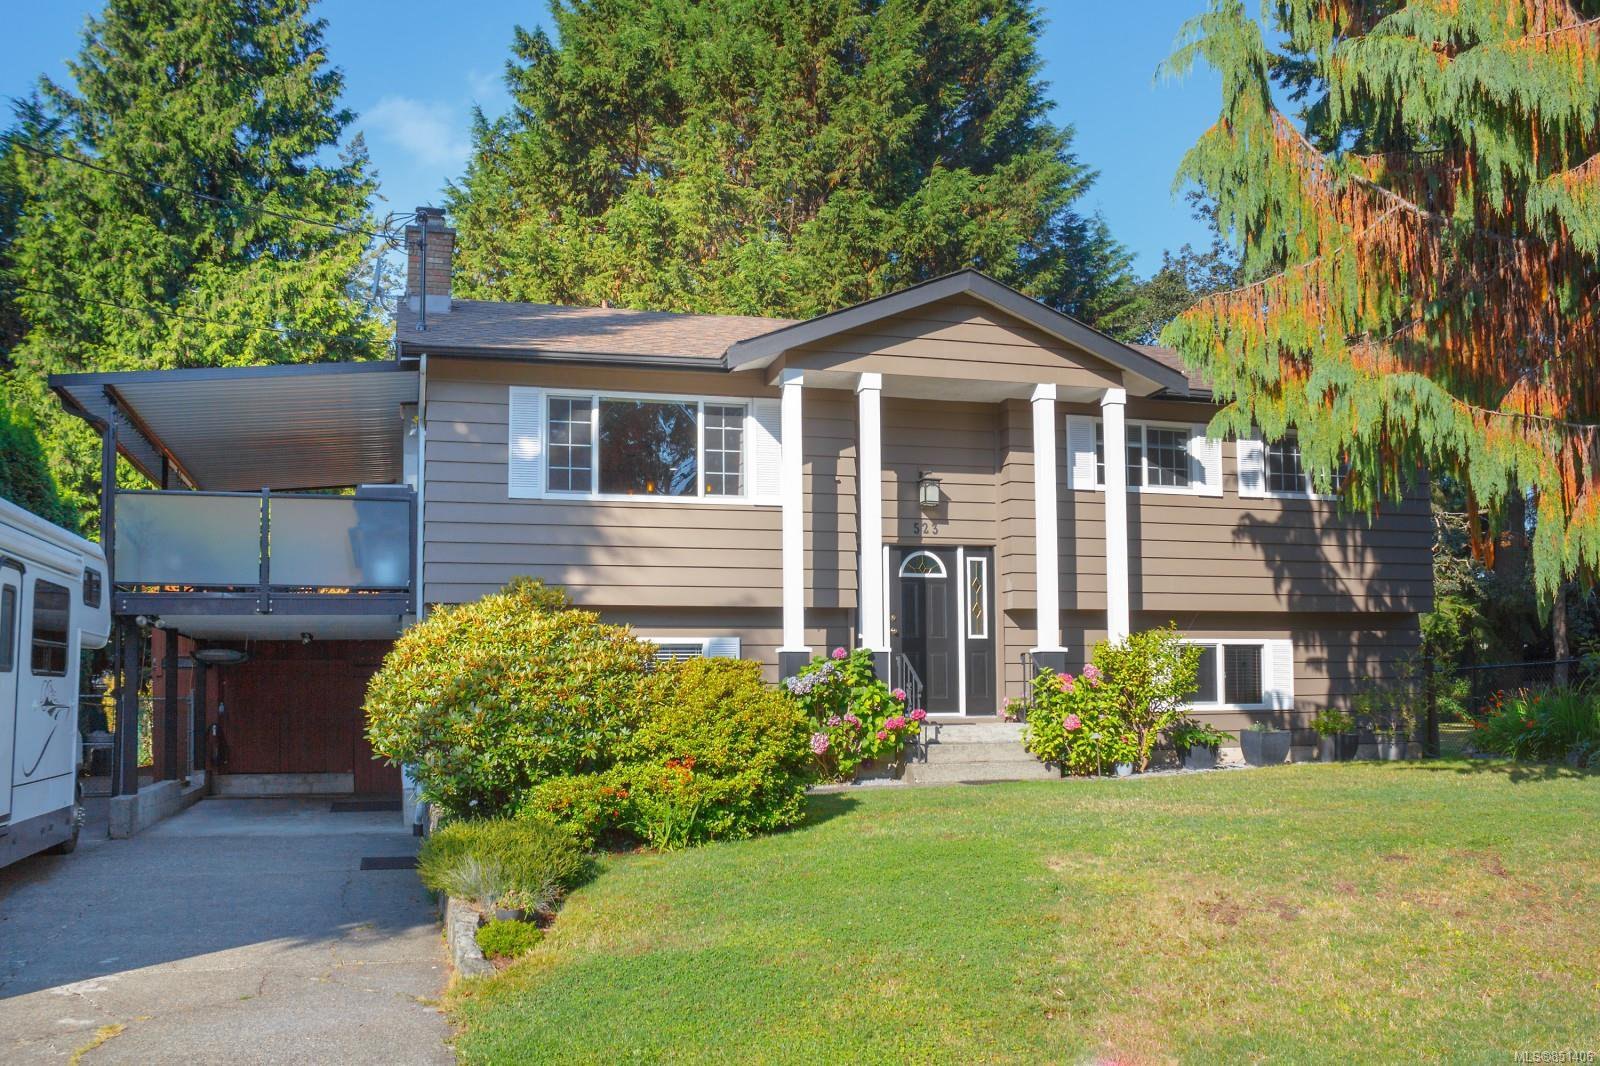 Main Photo: 523 Brough Pl in : Co Royal Roads Single Family Detached for sale (Colwood)  : MLS®# 851406